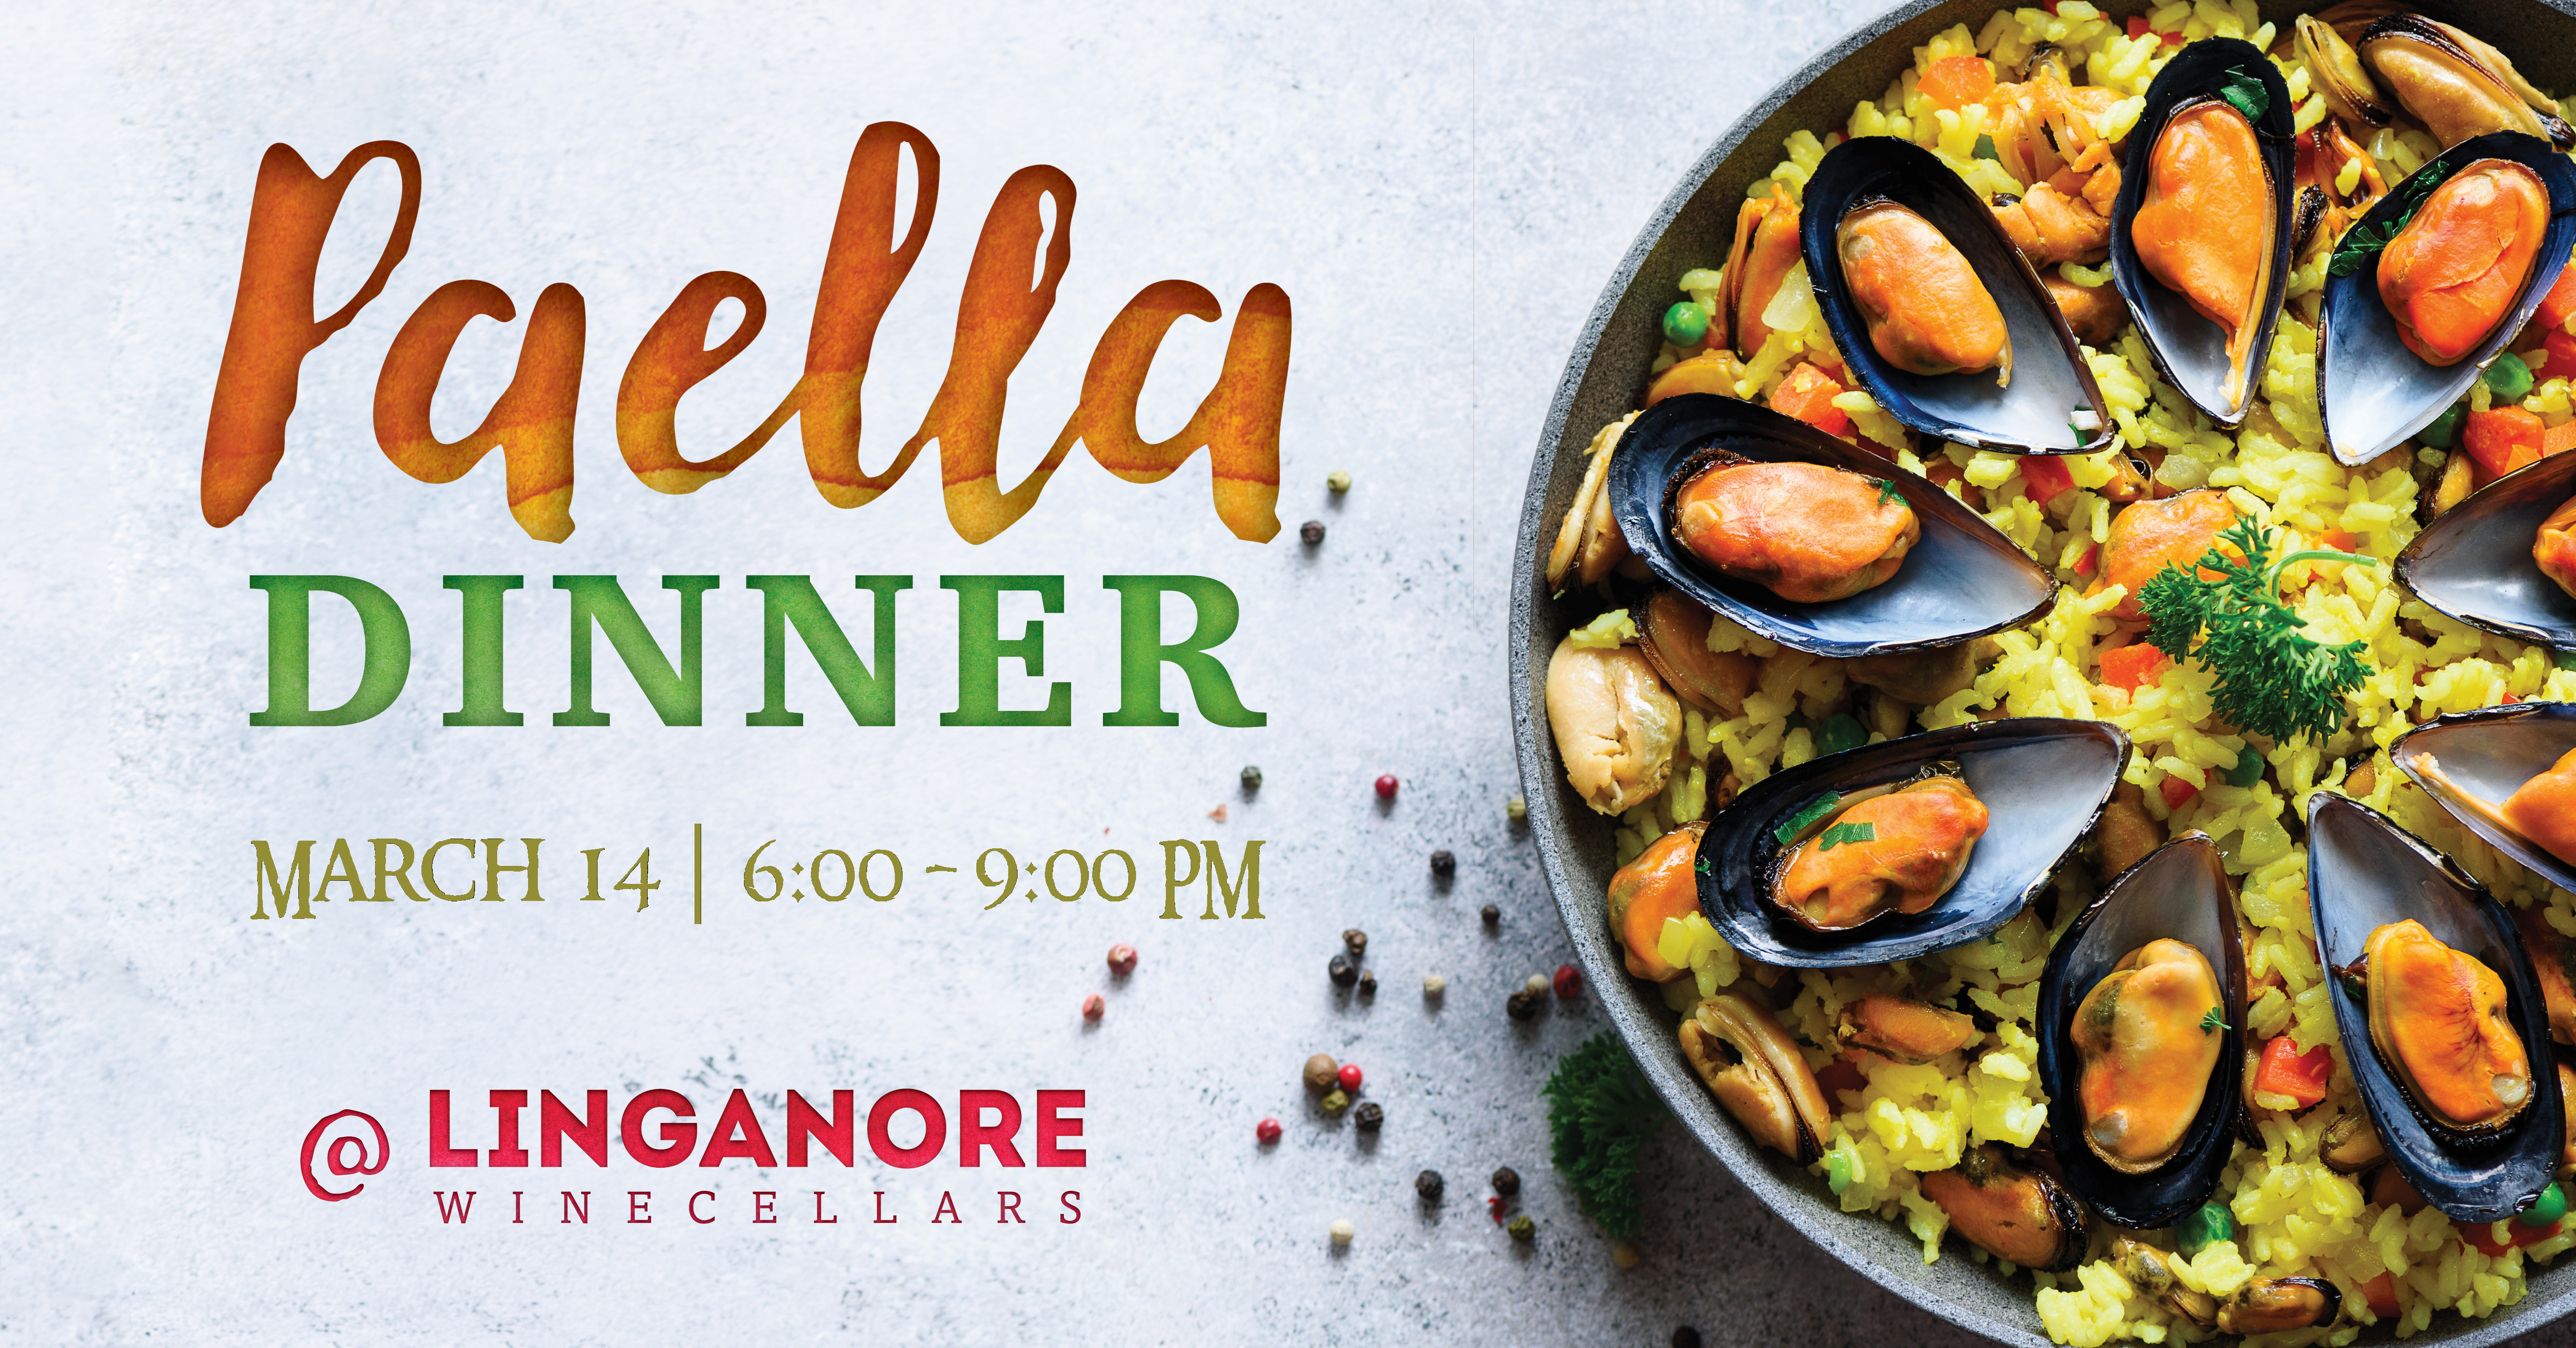 Paella Dinner is March 14